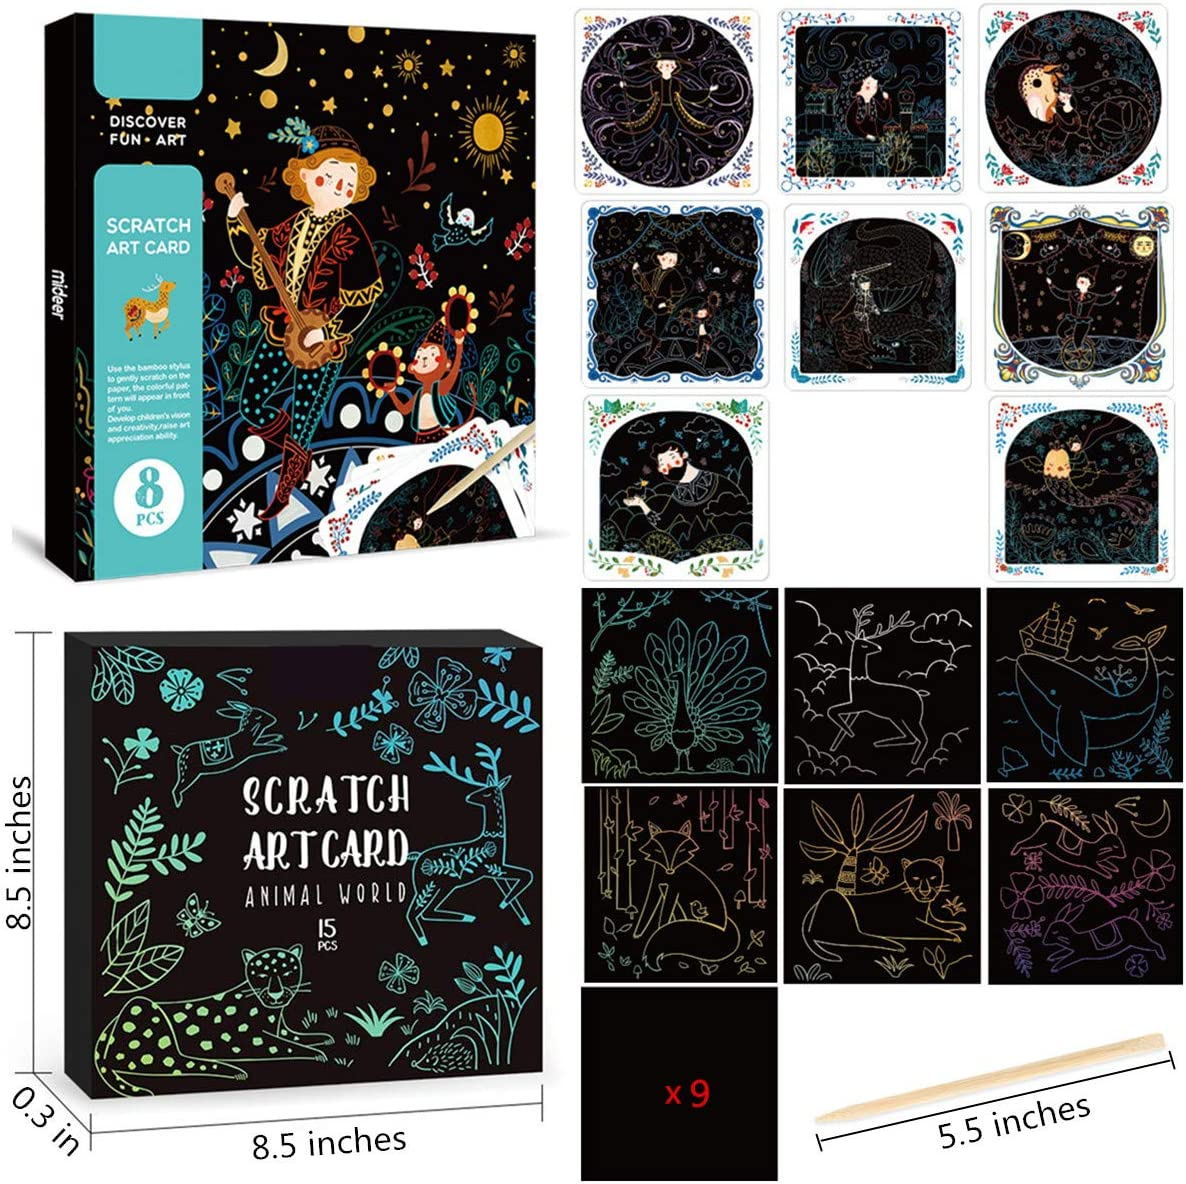 Style 1 Aimofox 23 Sheets Rainbow Scratch Paper 8 Fairy Tales Colorful Scratch Art Paper Fun Art Supplies for Kids Arts /& Crafts 6 Animal Painting Cards 9 pcs Graffiti Creative Scratchboard